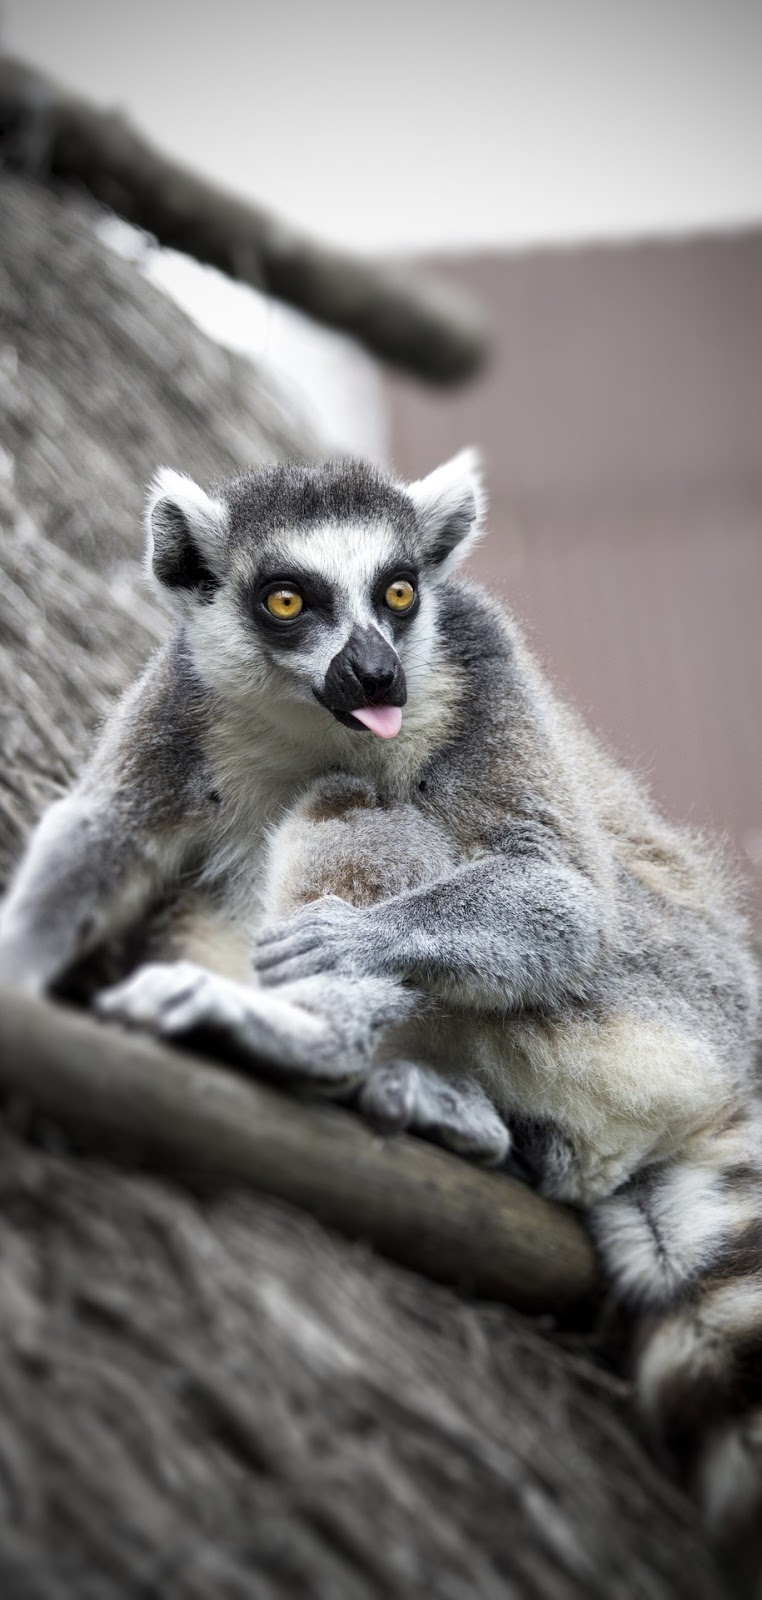 A lemur making a face.